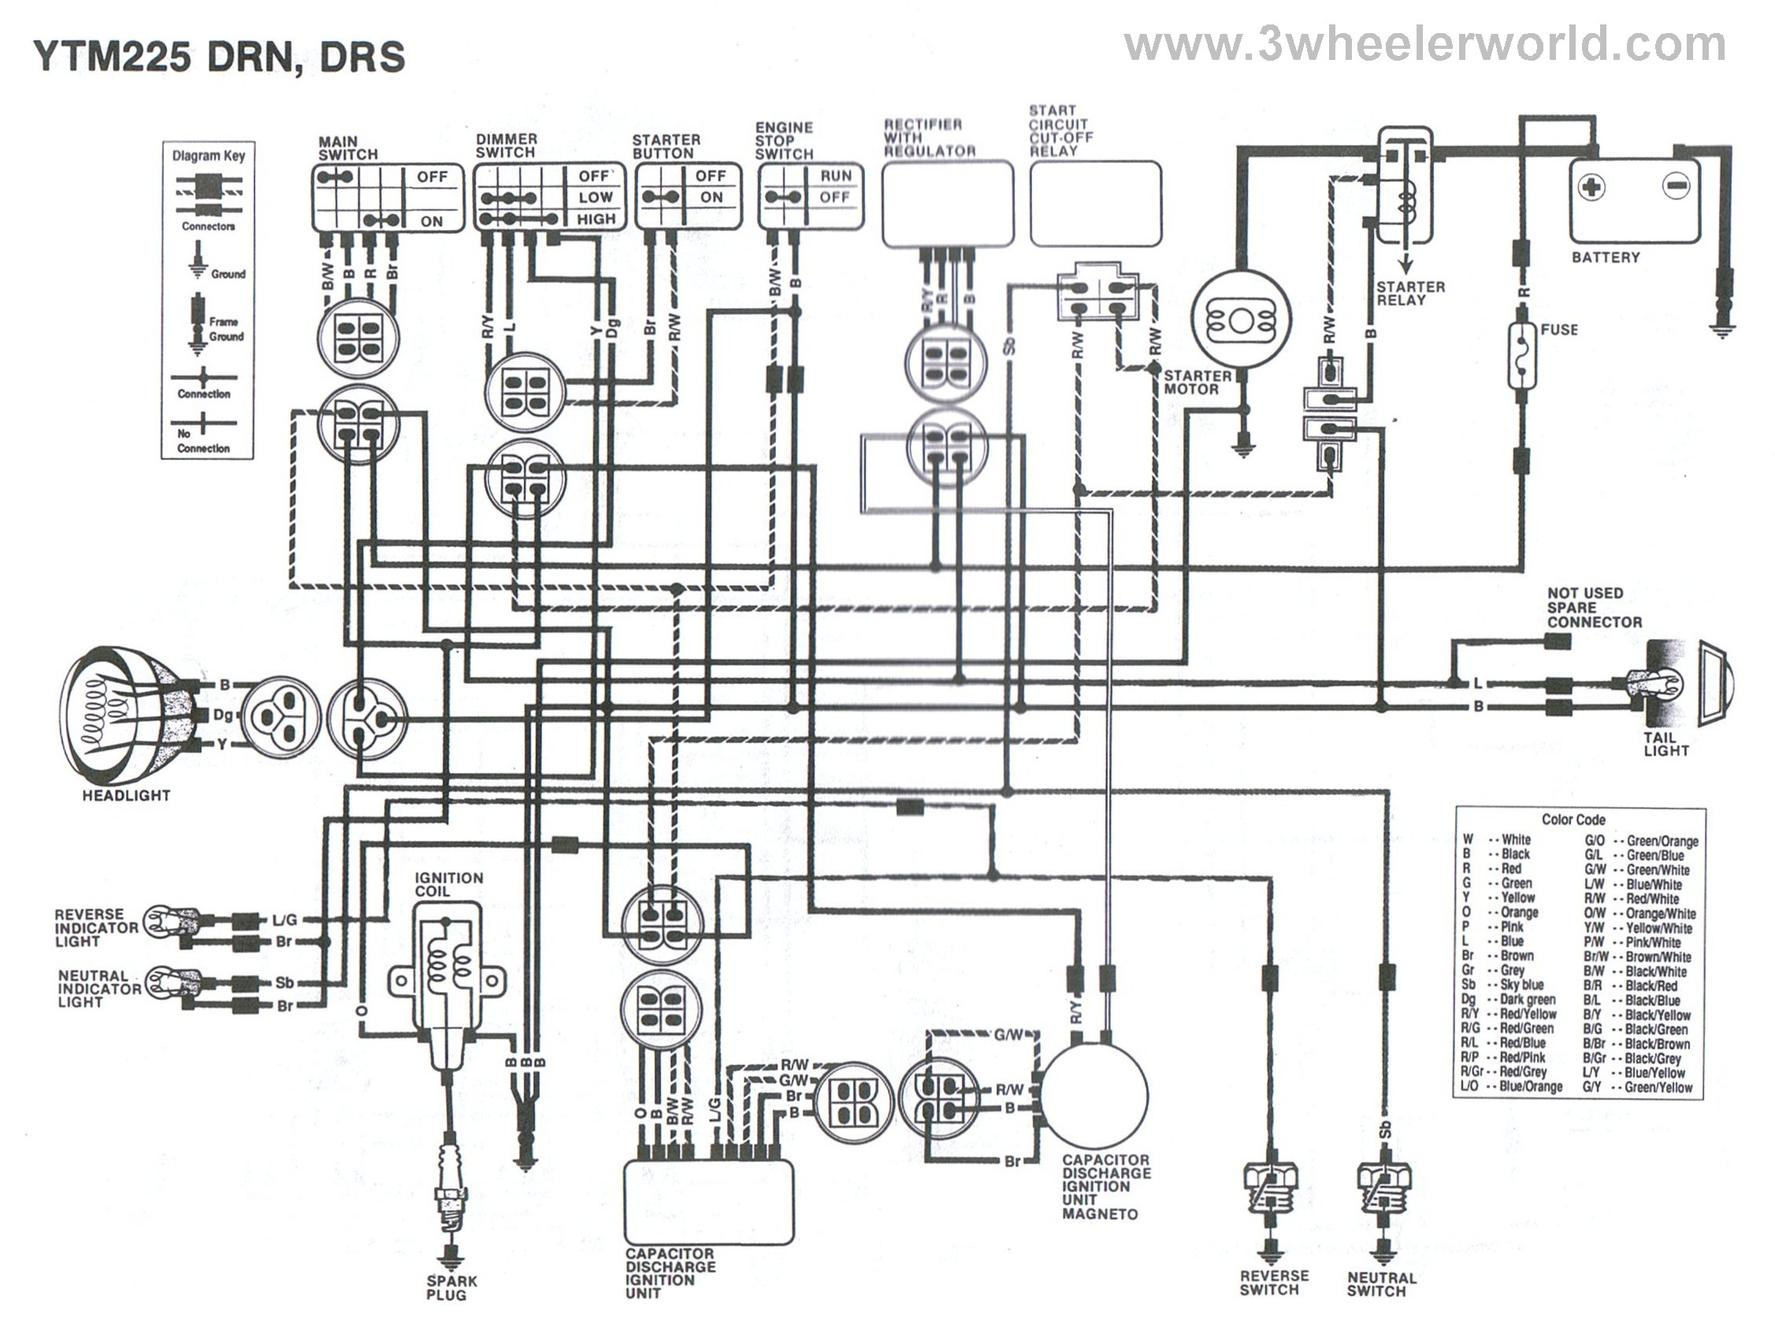 Ignition Wiring Diagram For Yamaha V Star | Manual E-Books - Yamaha Outboard Wiring Diagram Pdf